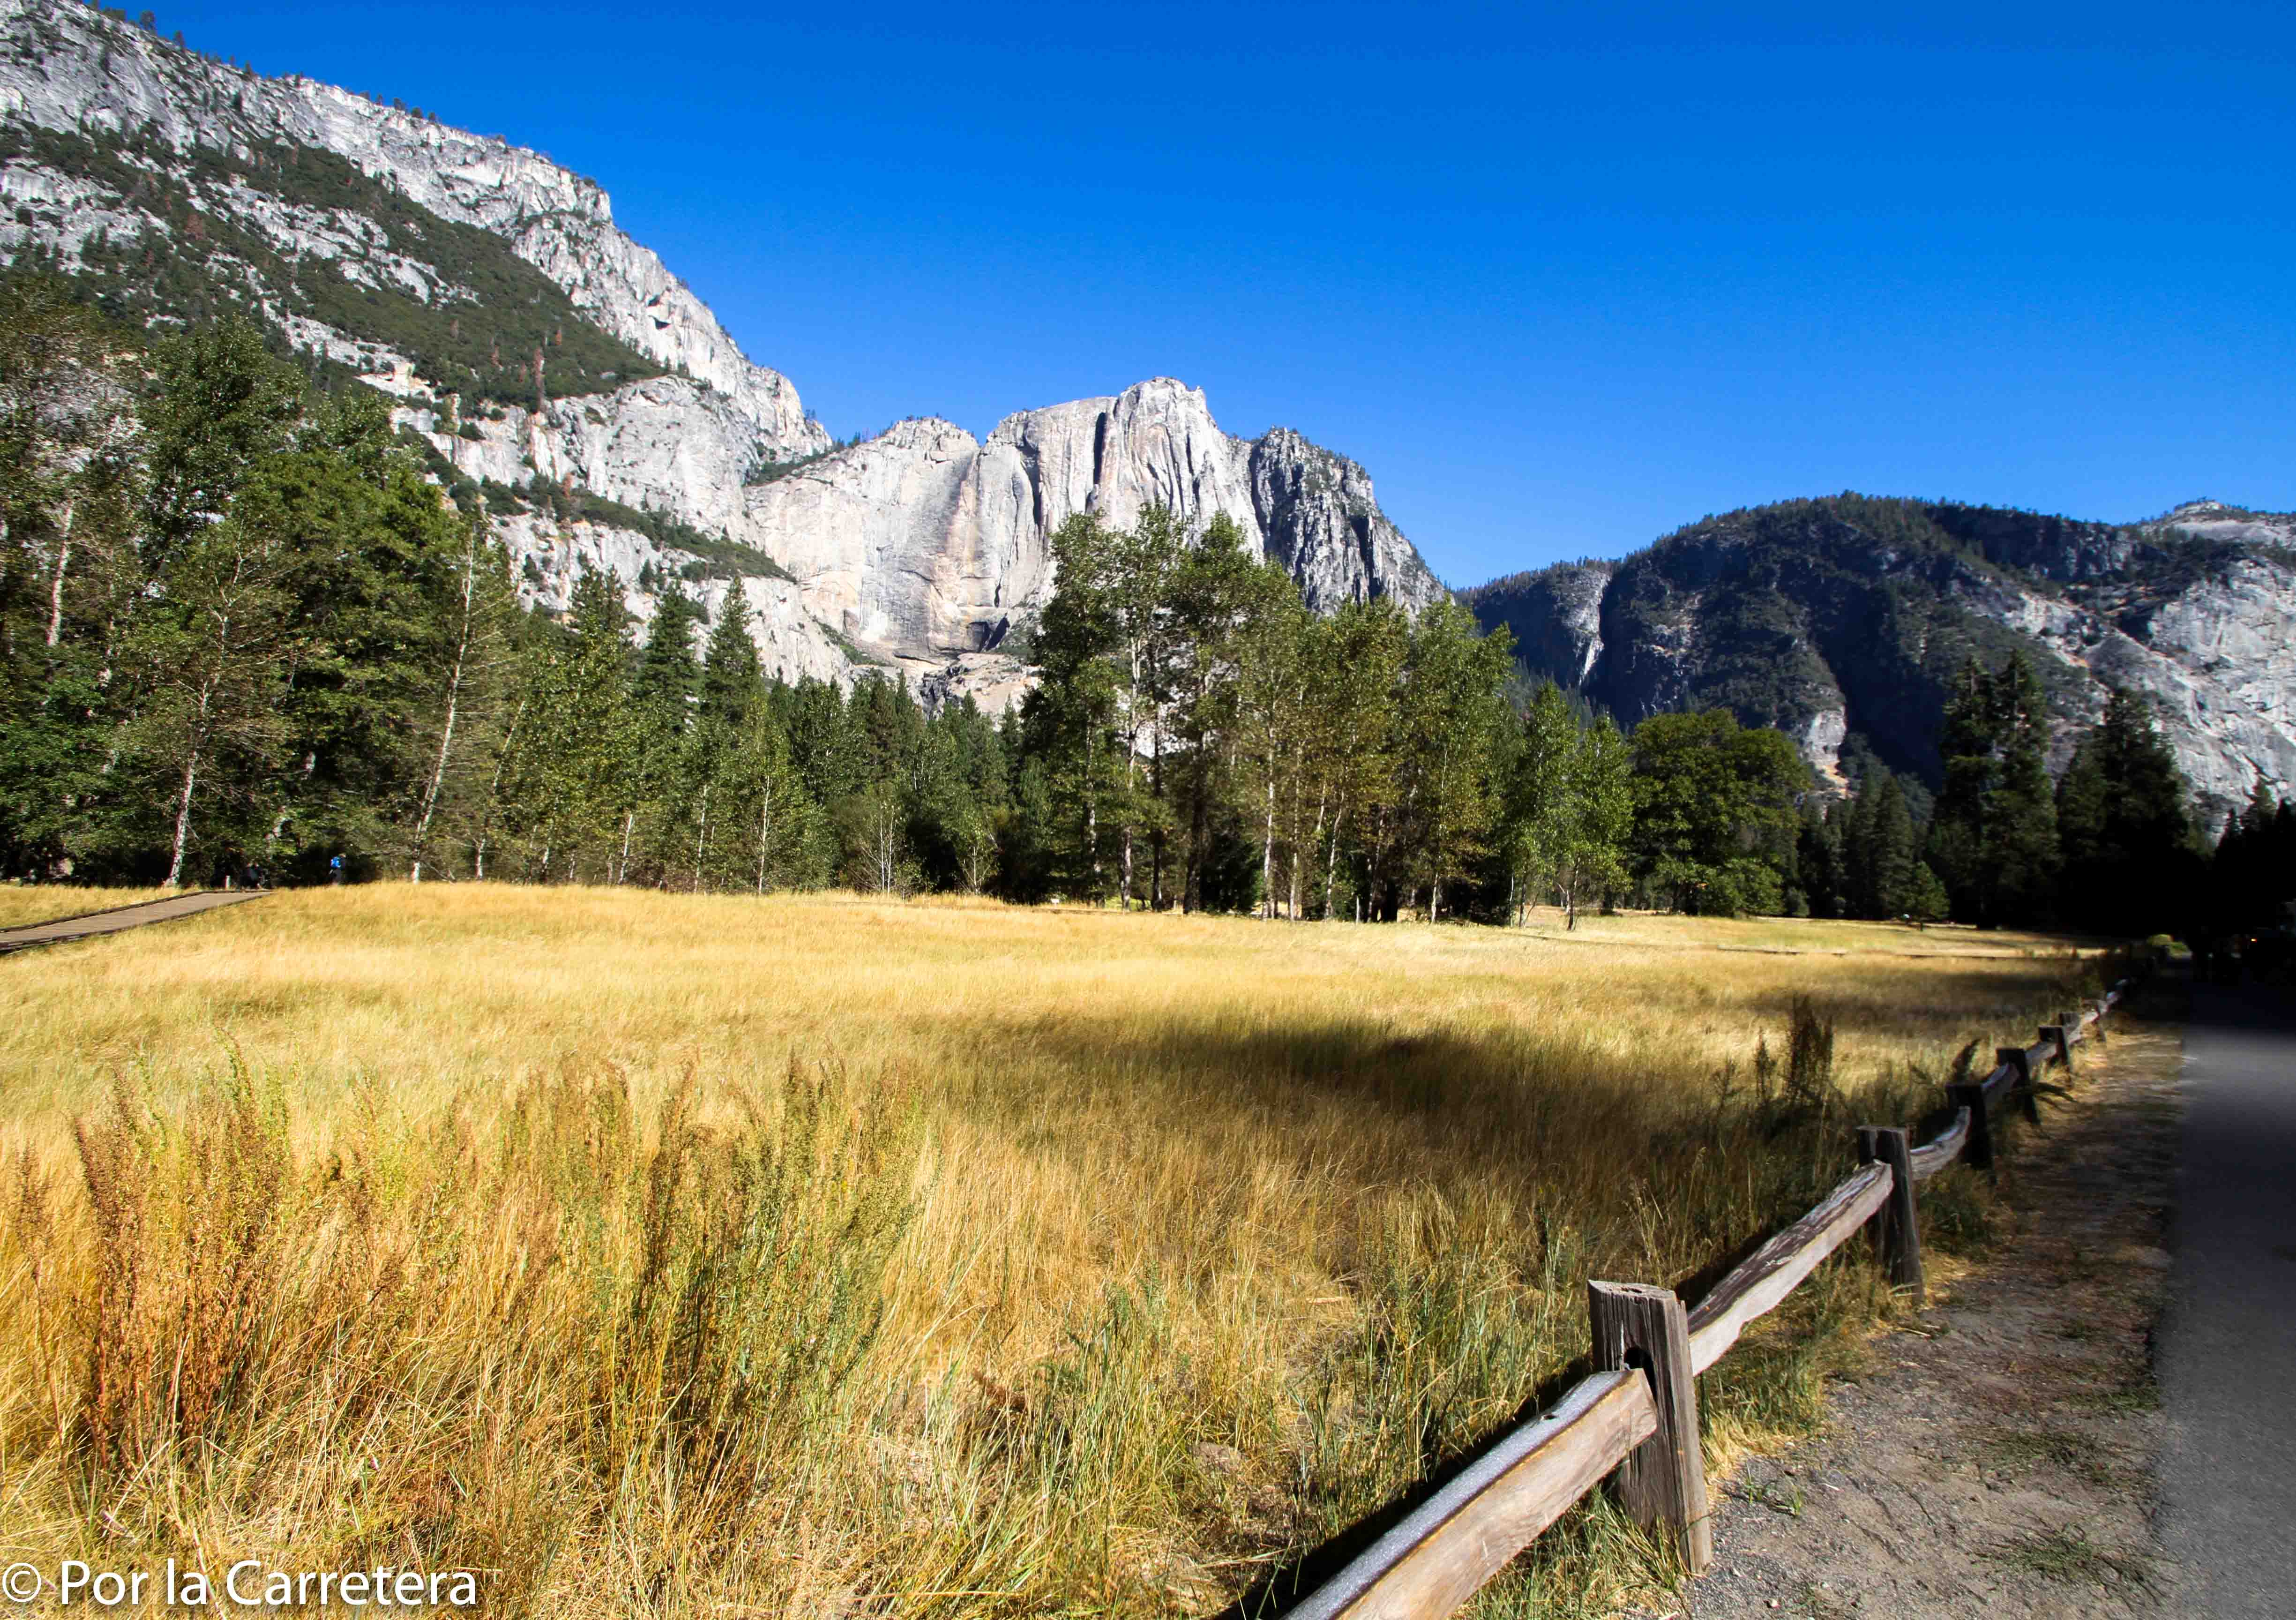 Acampar no Yosemite Valley